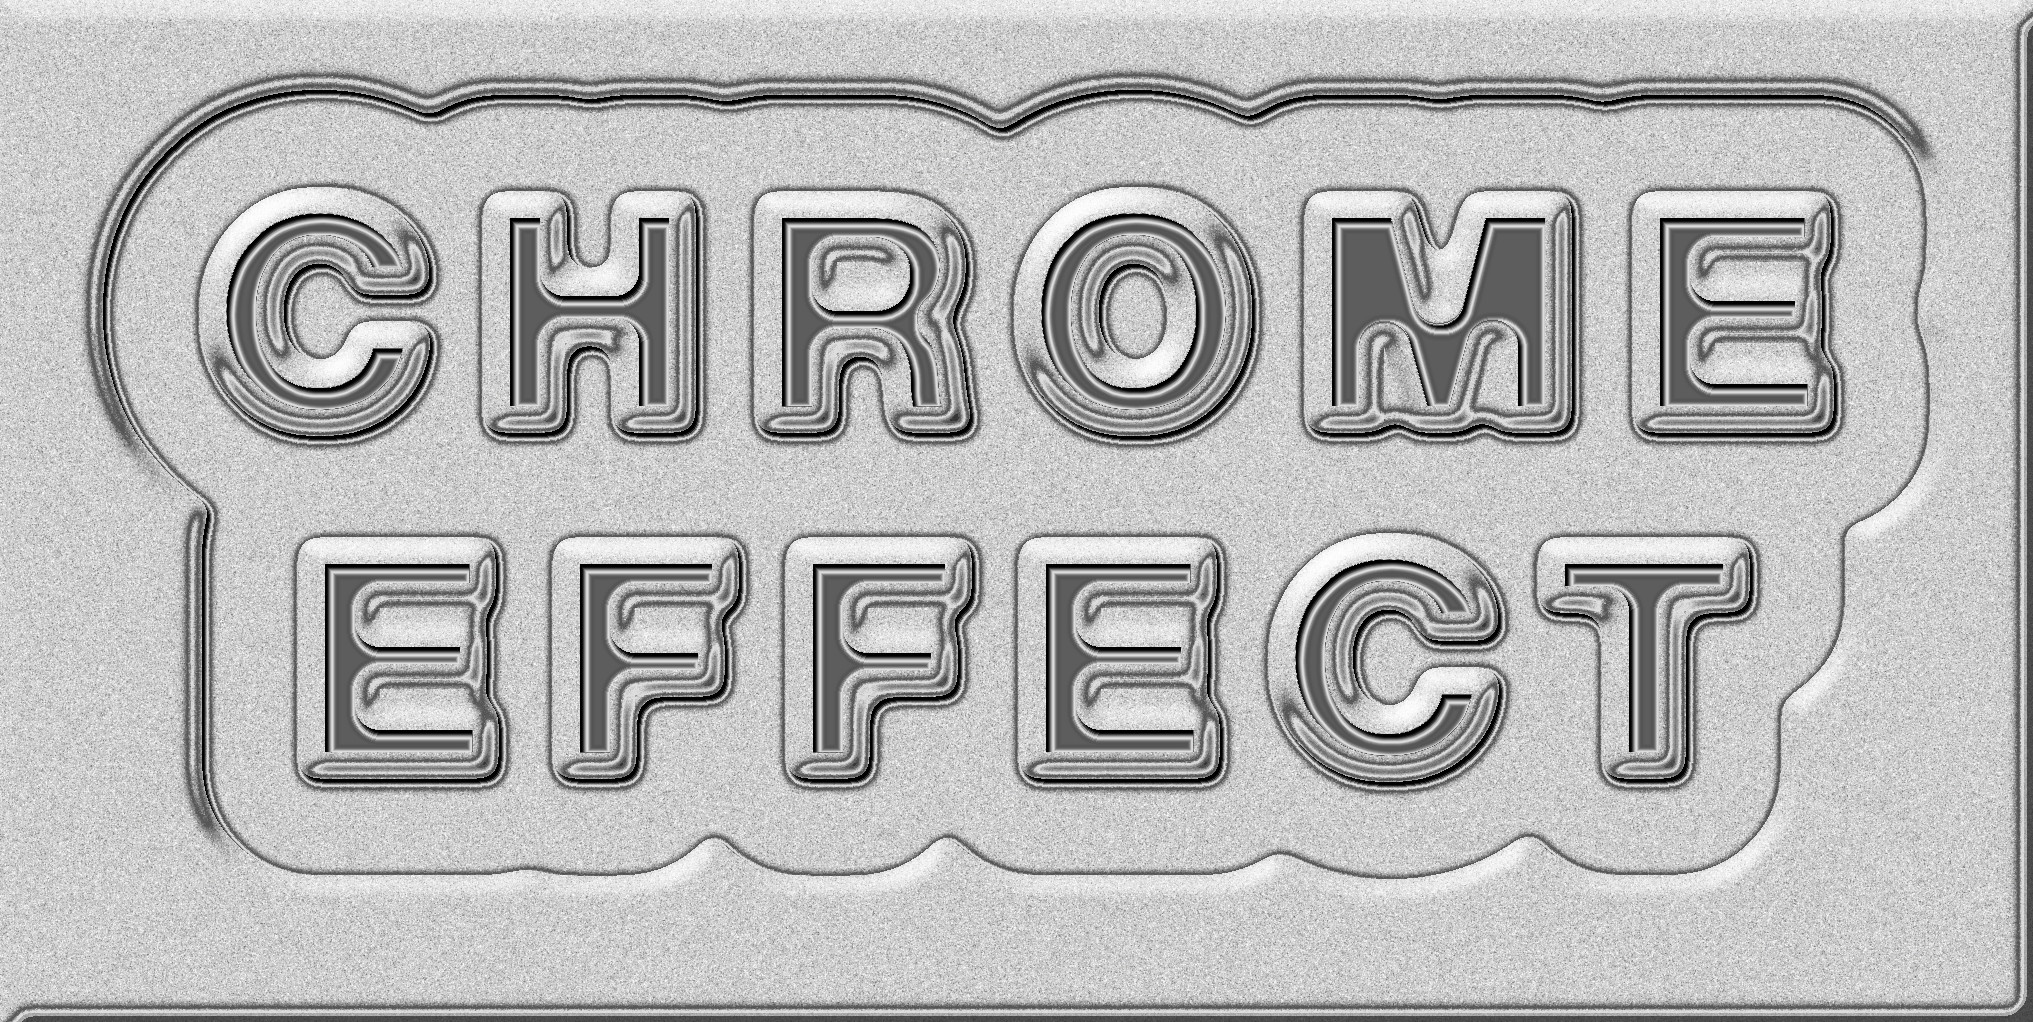 Pm Carved Plastic Or Chrome Text